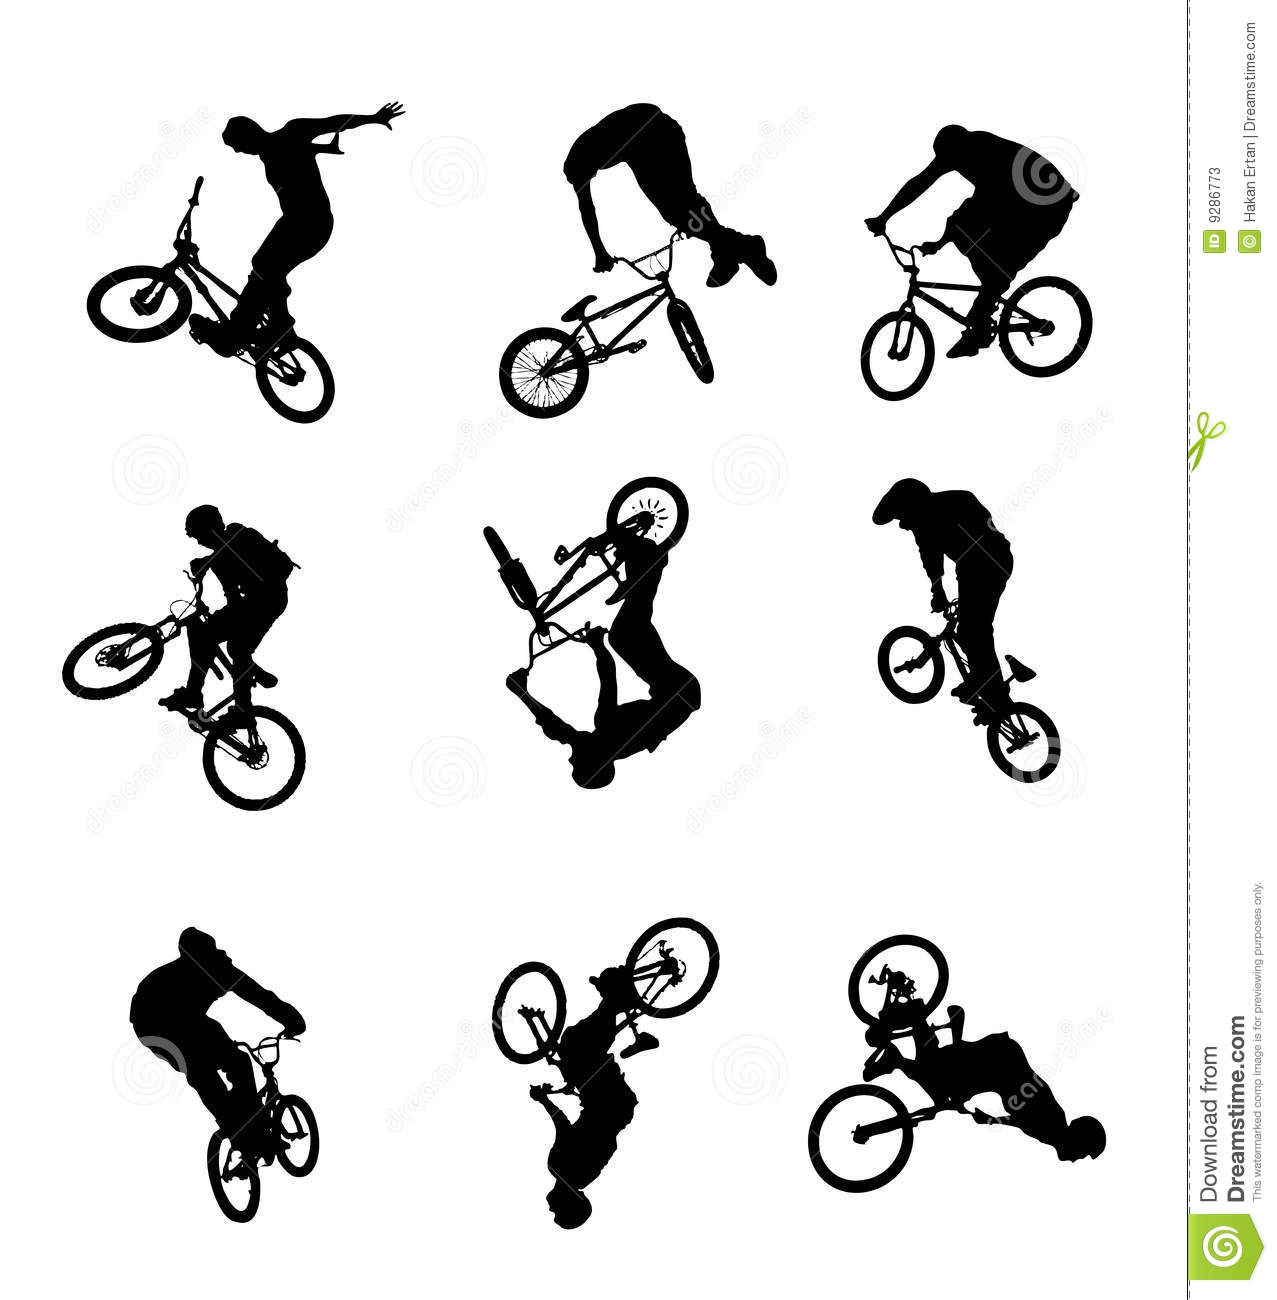 Free Bmx Coloring Page, Download Free Clip Art, Free Clip Art on ... | 1300x1277